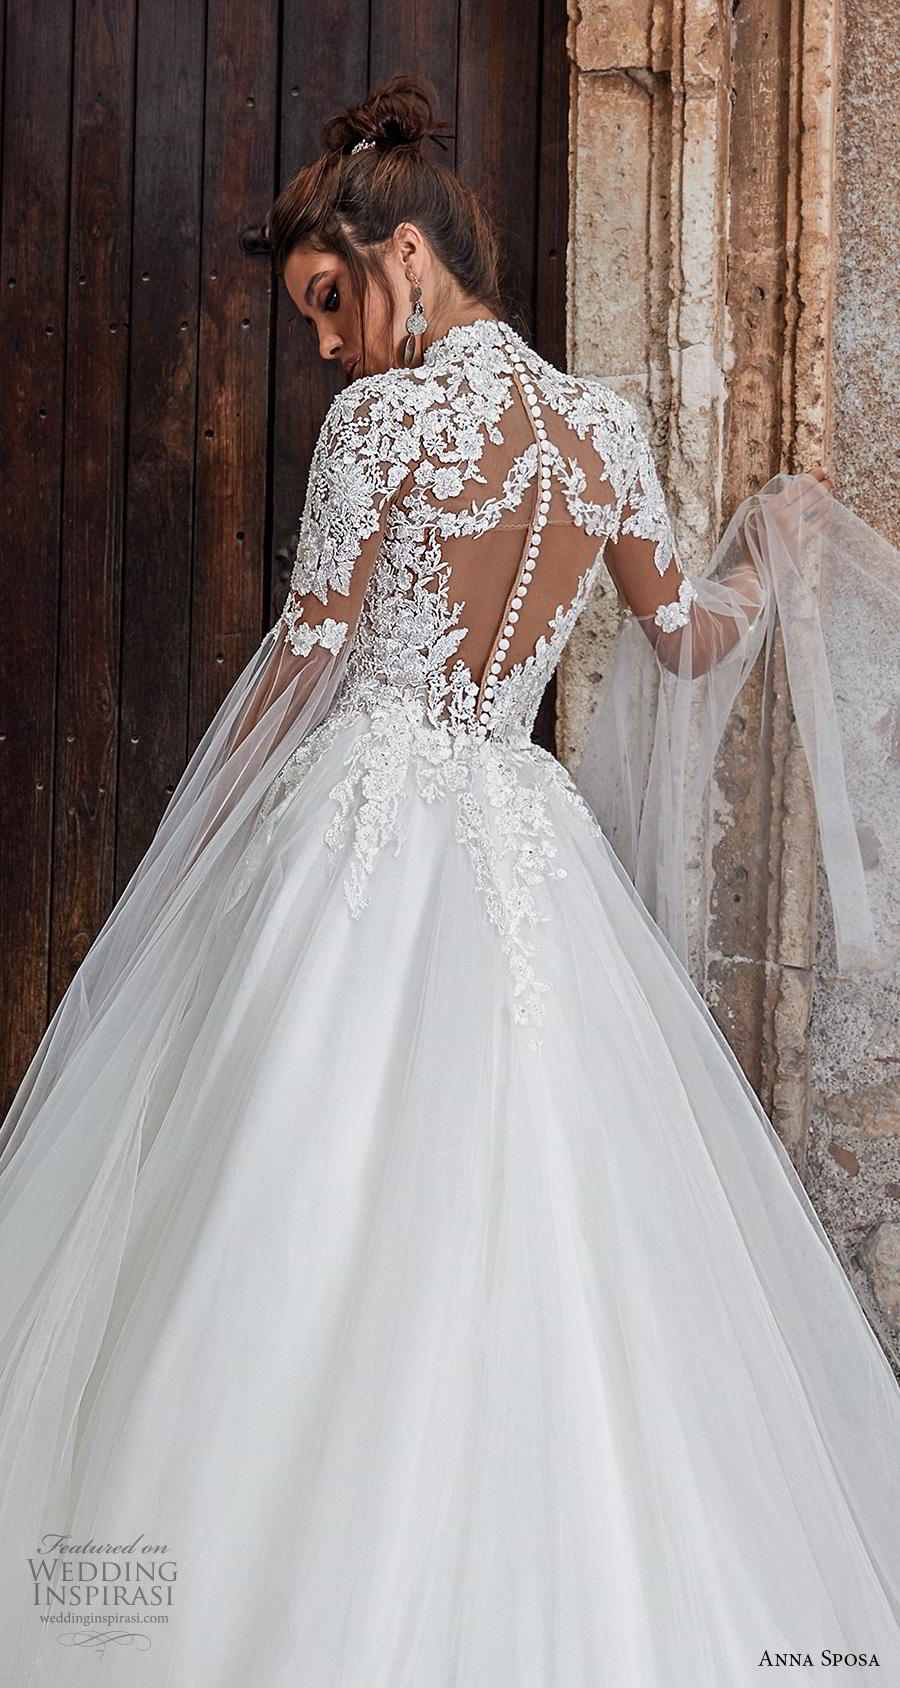 anna sposa 2019 bridal half sleeves high neck deep plunging sweetheart neckline heavily embellished bodice princess ball gown a  line wedding dress keyhole button back royal train (10) zbv